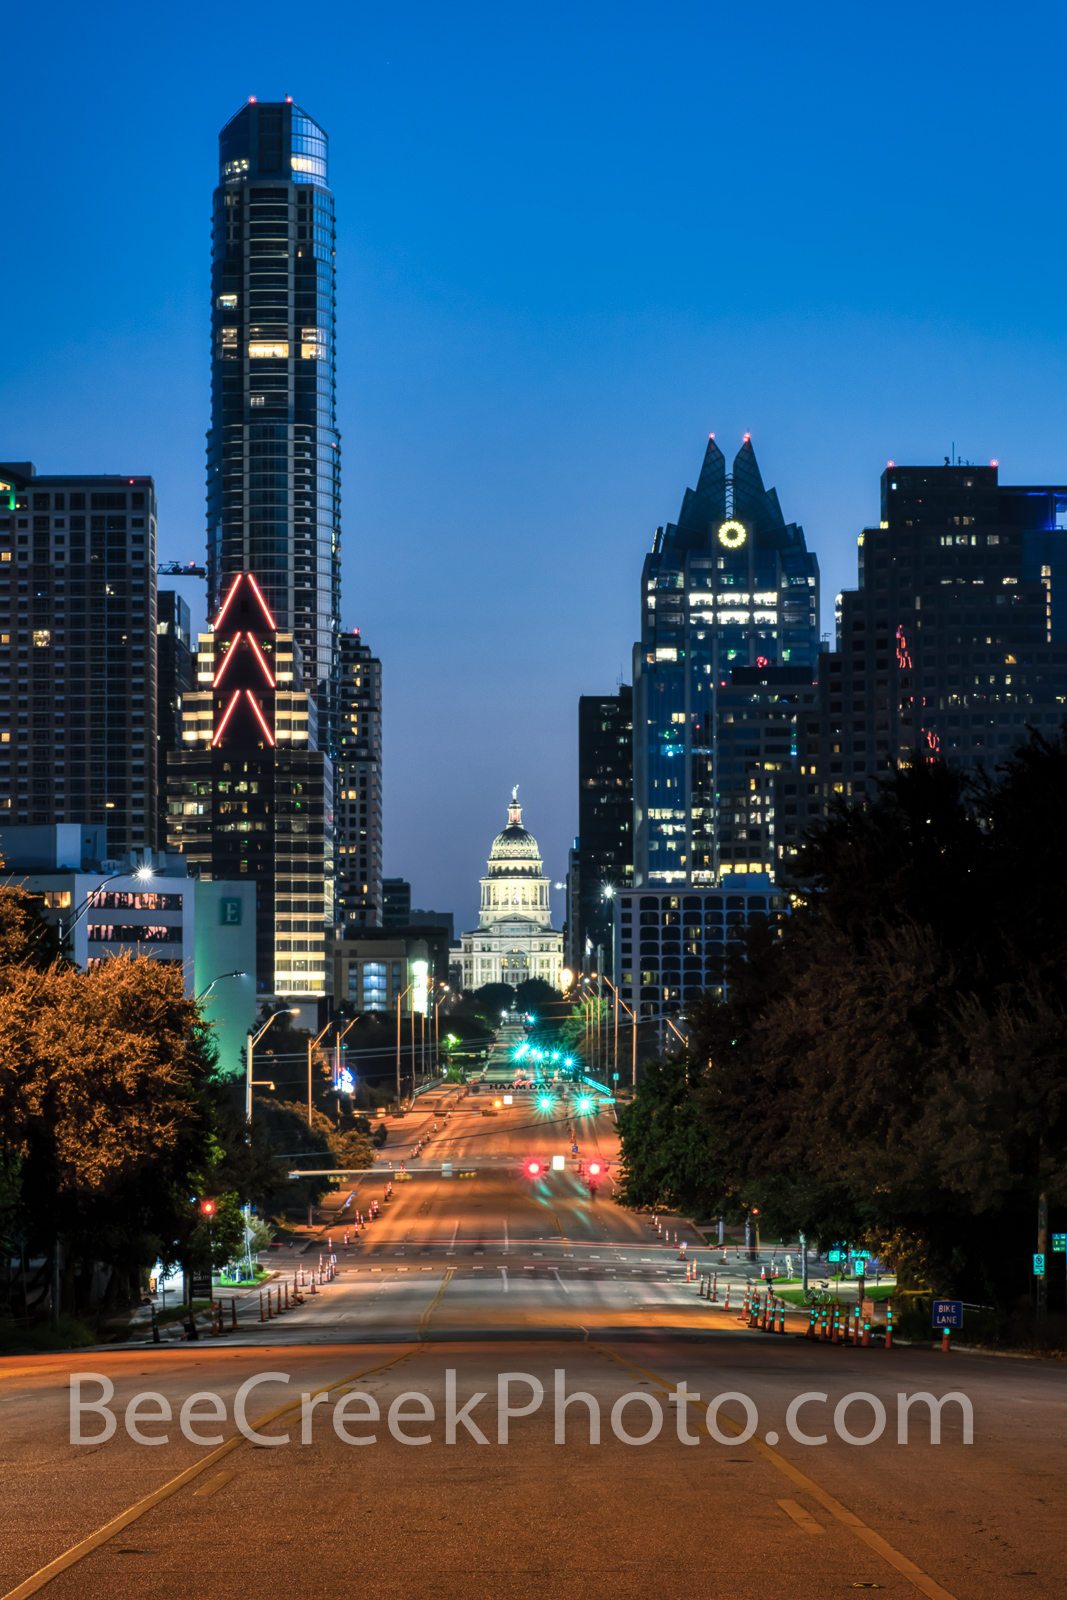 austin, texas, austin skyline, austin downtown, austin texas, downtown austin, austin texas, soco, austin soco, south congress, texas capitol, congress, frost tower, austonian, skyline, dark, blue hou, photo